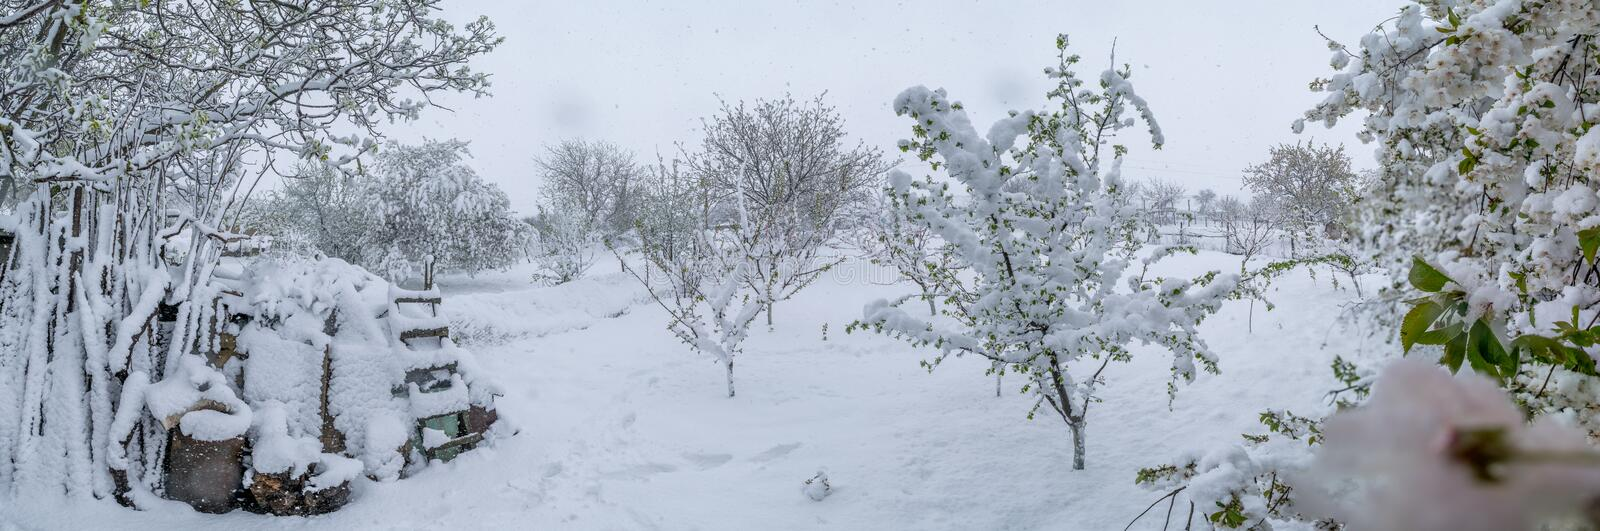 A natural calamity of snow during the bloom of the trees and the harvest royalty free stock image